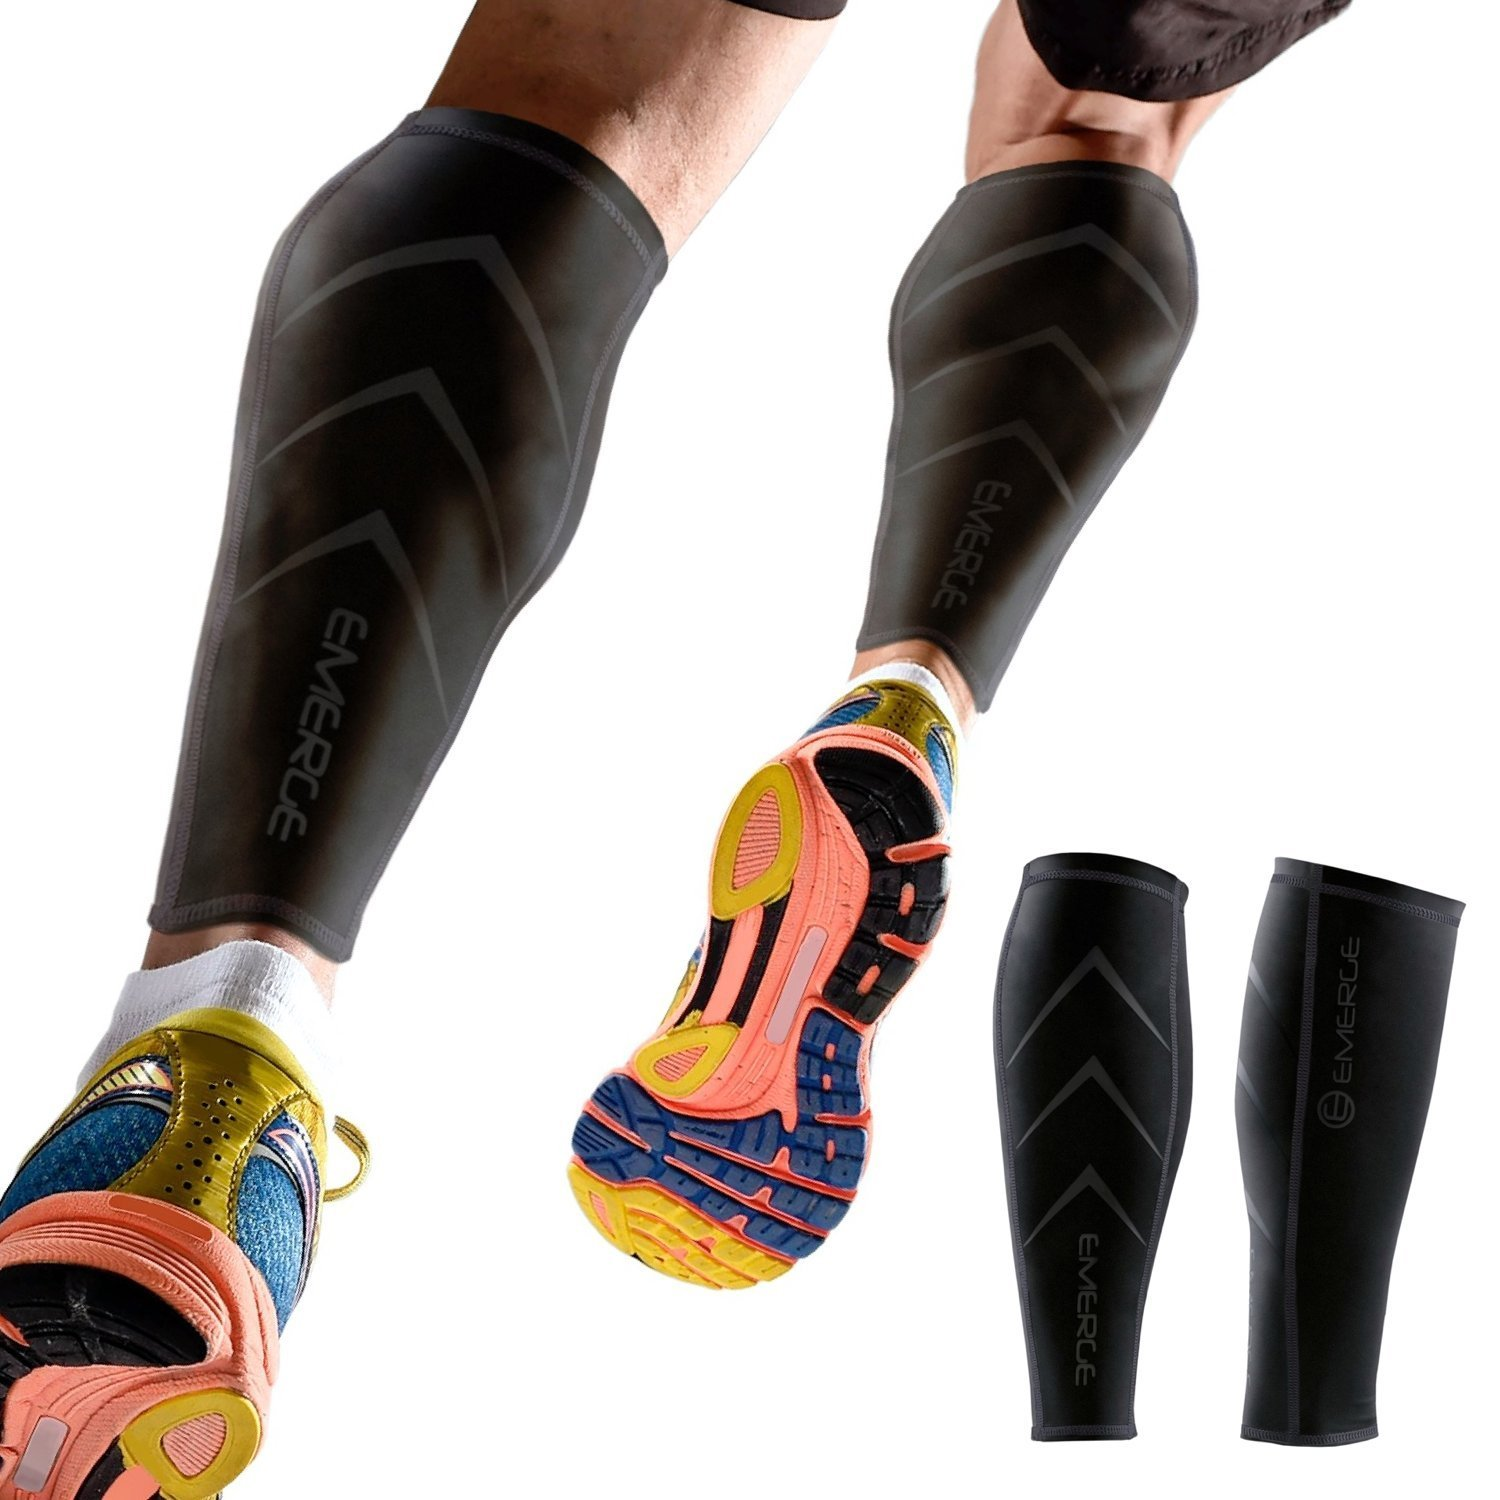 Best Compression Sleeves For Calves And Shin Splints